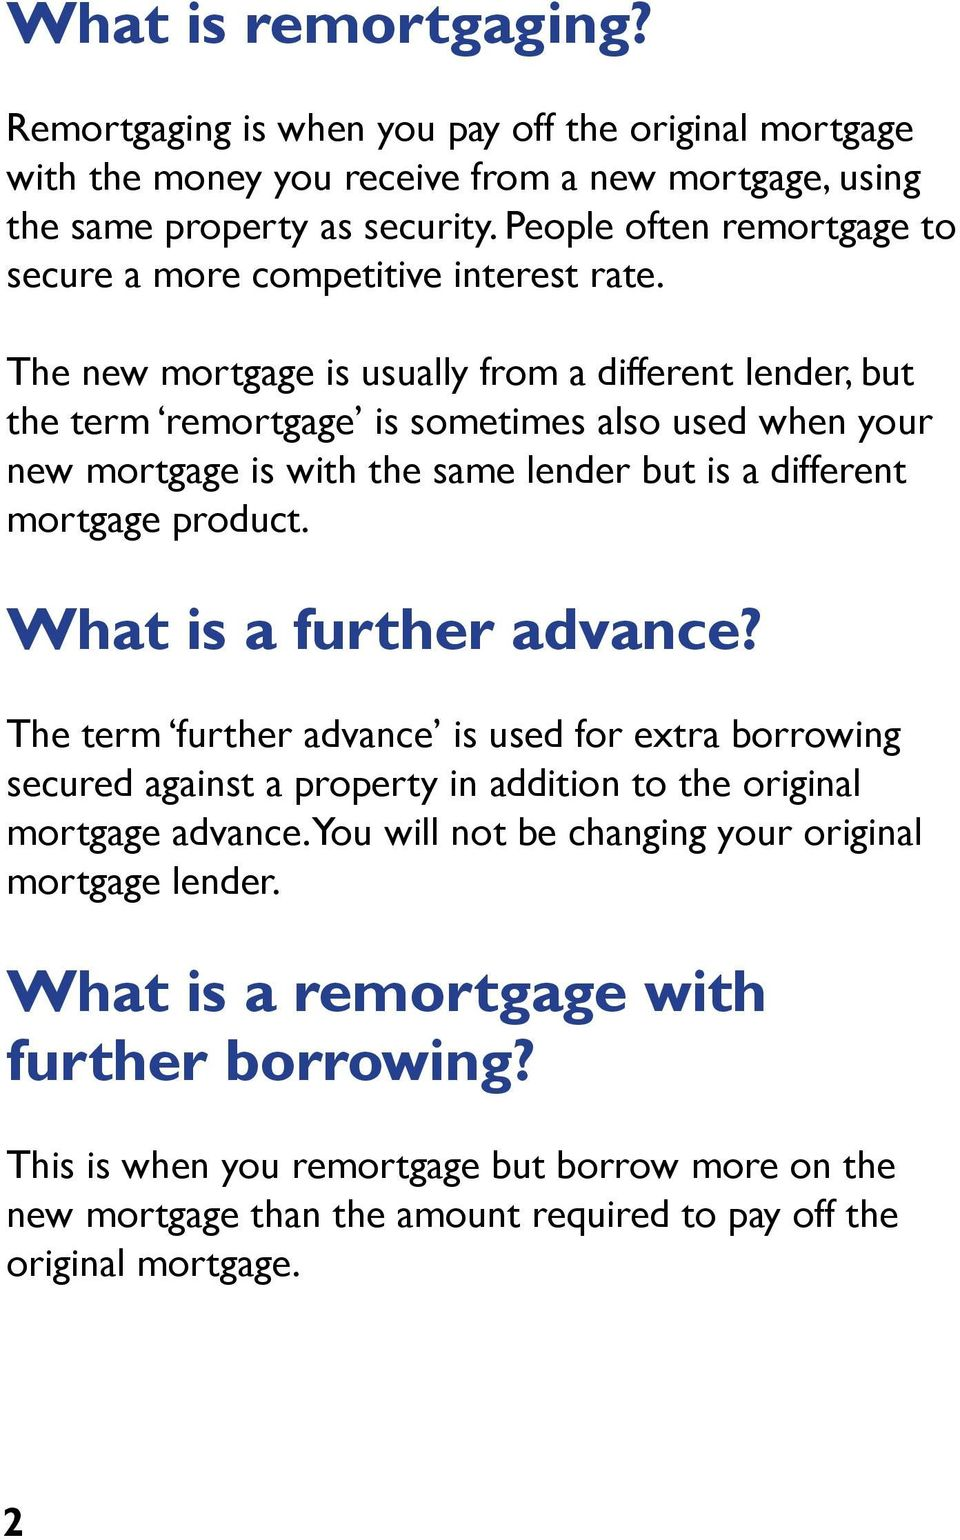 The new mortgage is usually from a different lender, but the term remortgage is sometimes also used when your new mortgage is with the same lender but is a different mortgage product.